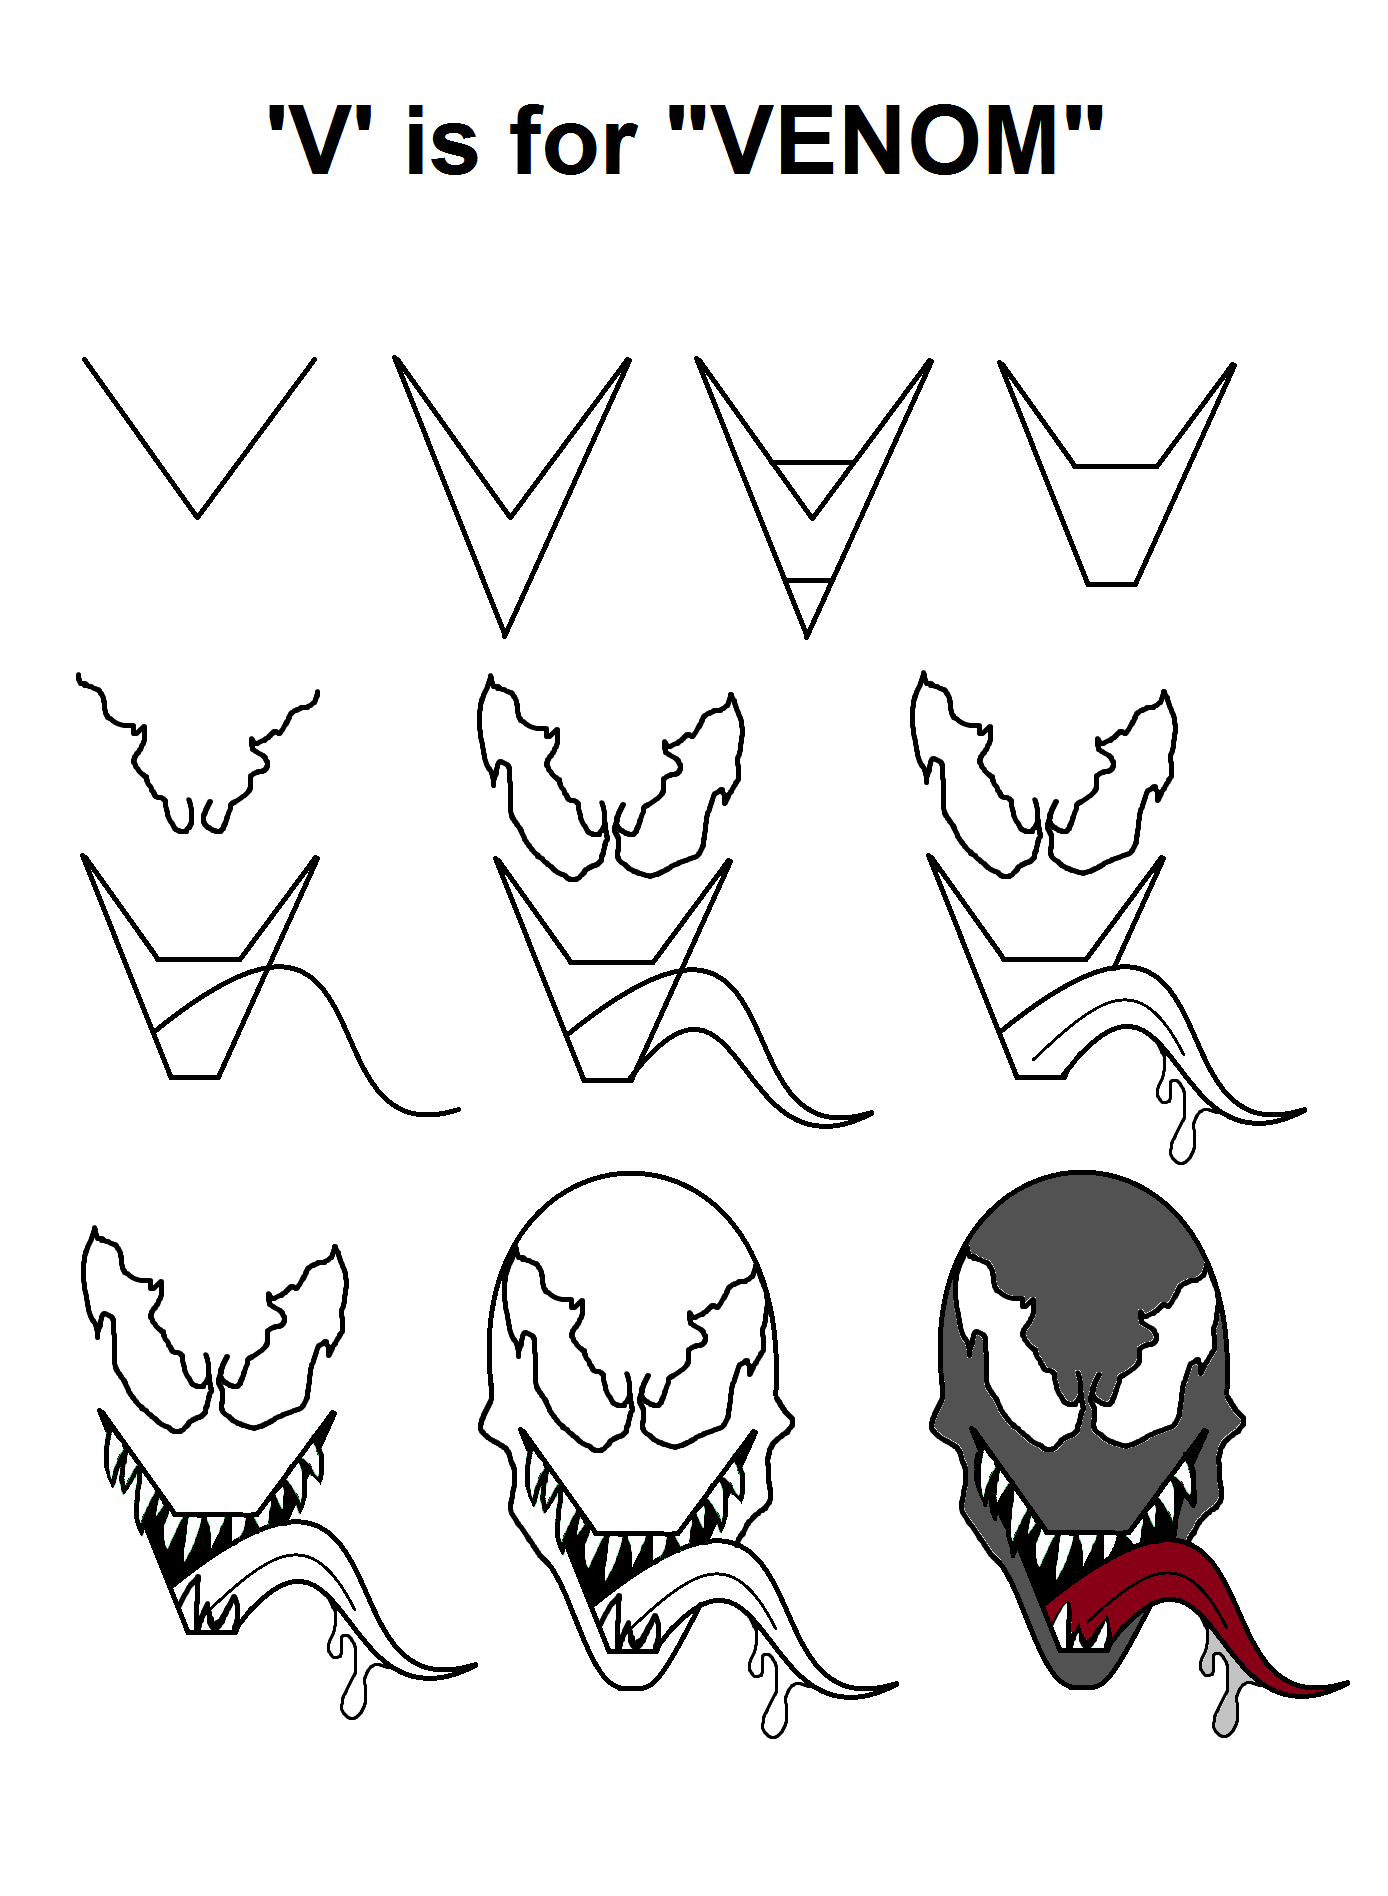 Step By Step Tutorial For Drawing Venom With The Letter V